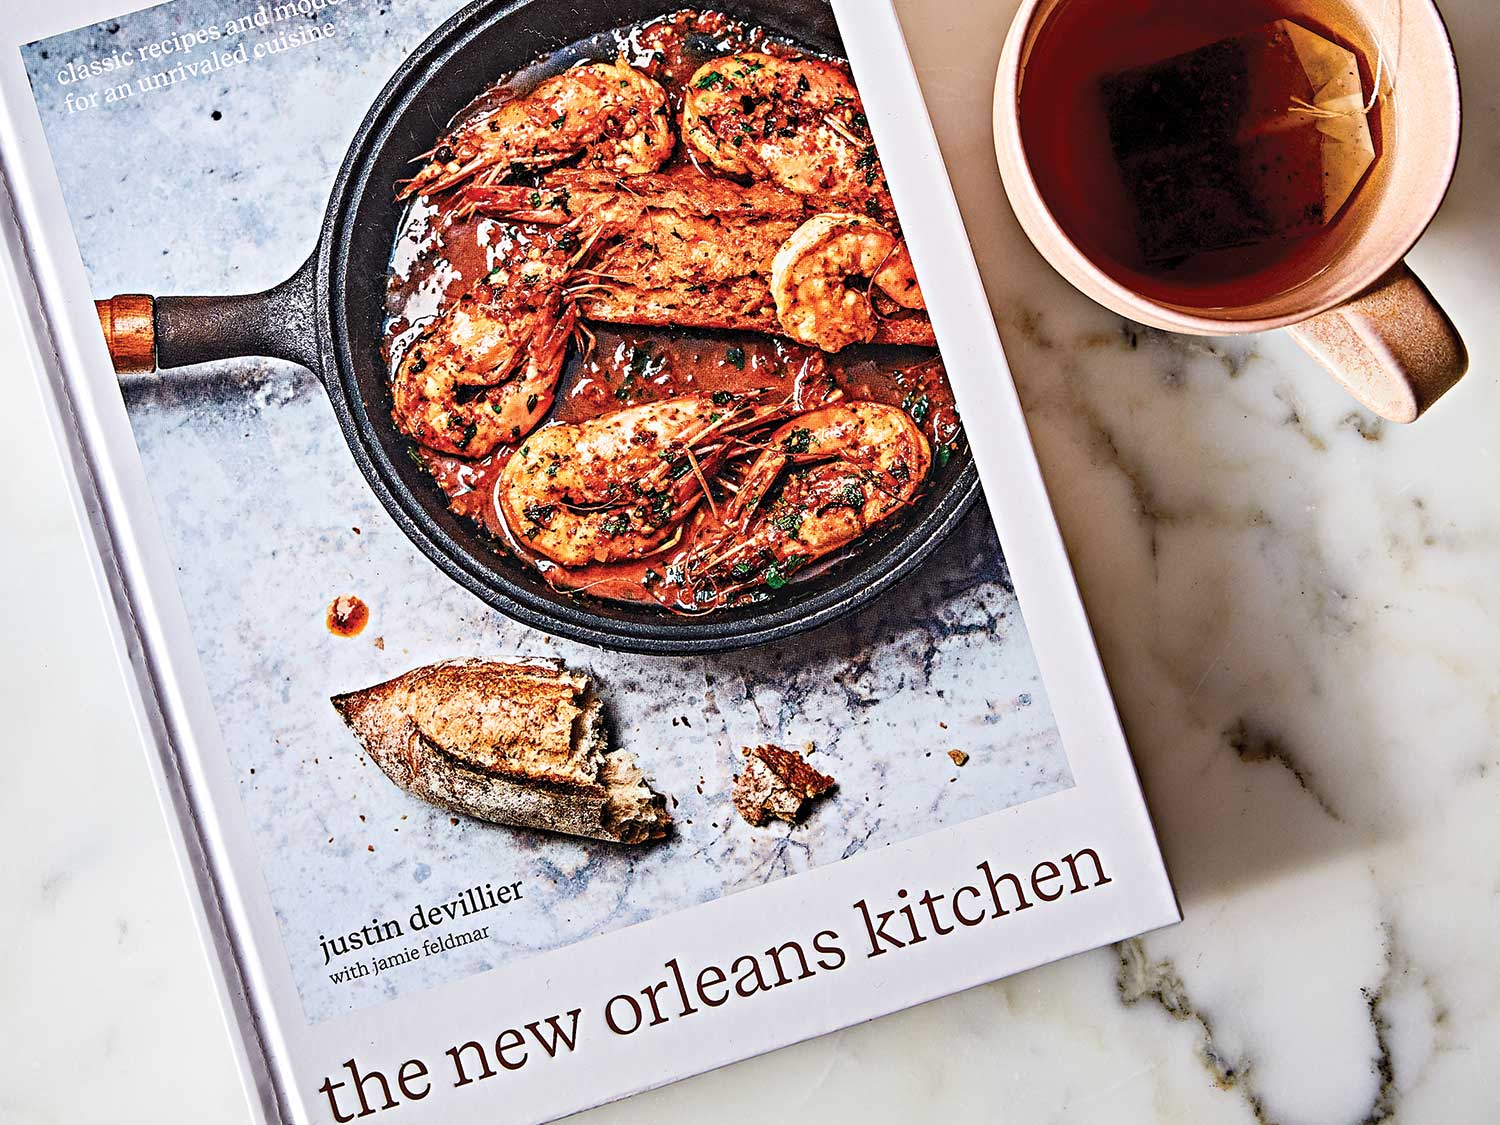 The New Orleans Kitchen by Justin Devillier with Jamie Feldmar.